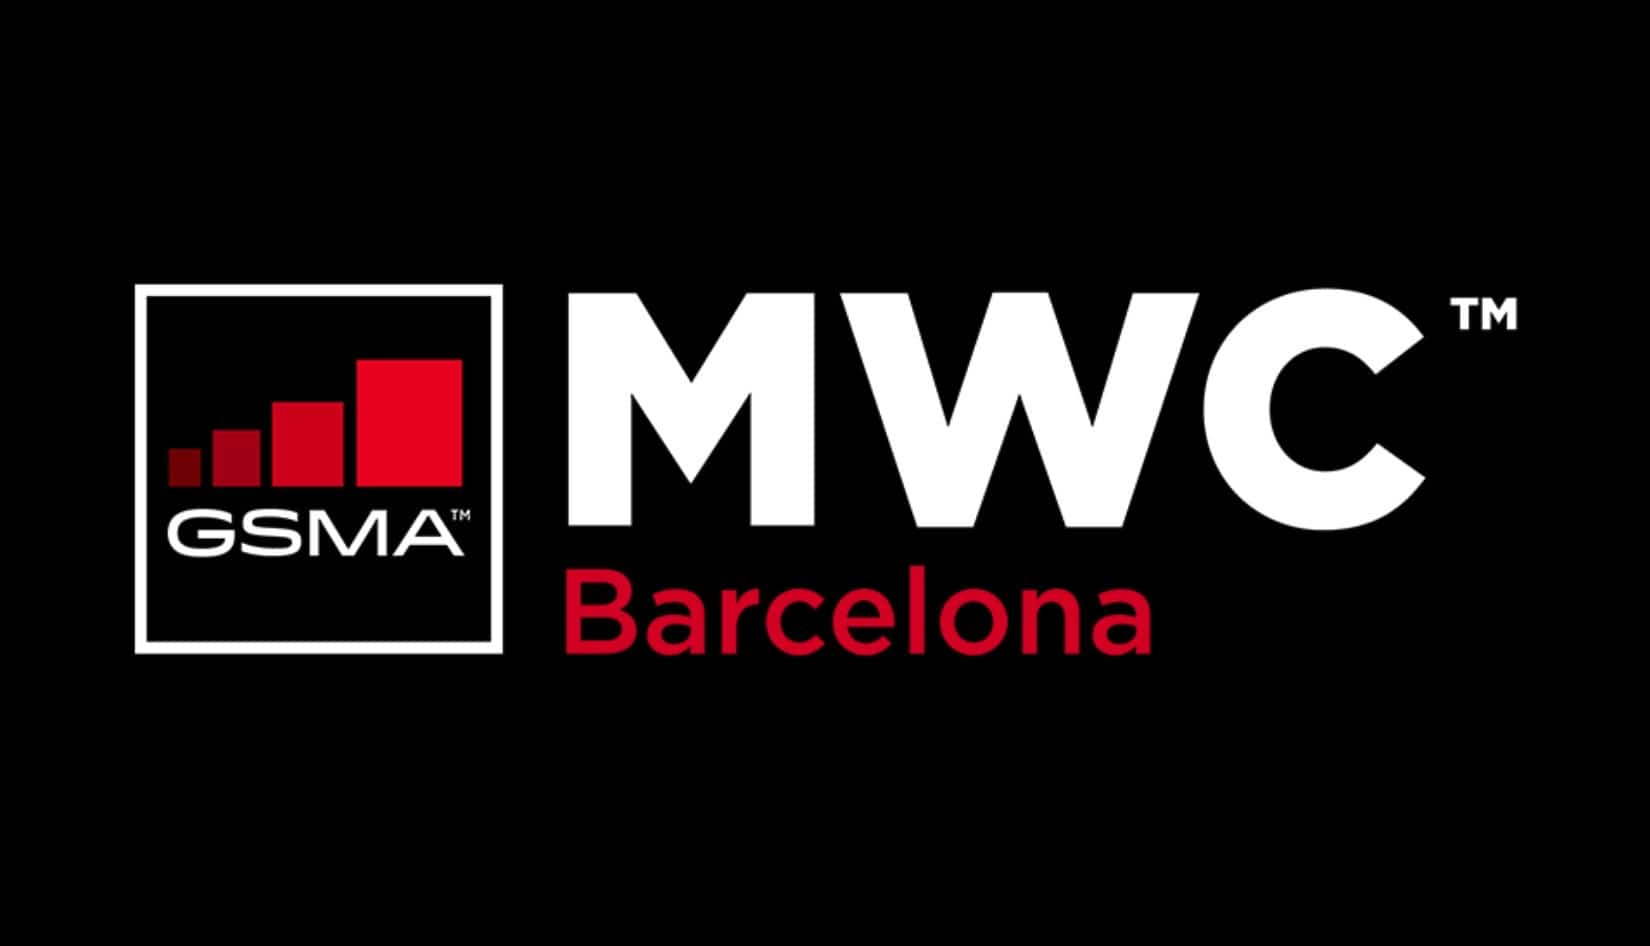 Mobile World Congress in Barcelona officially cancelled due to coronavirus threat 12